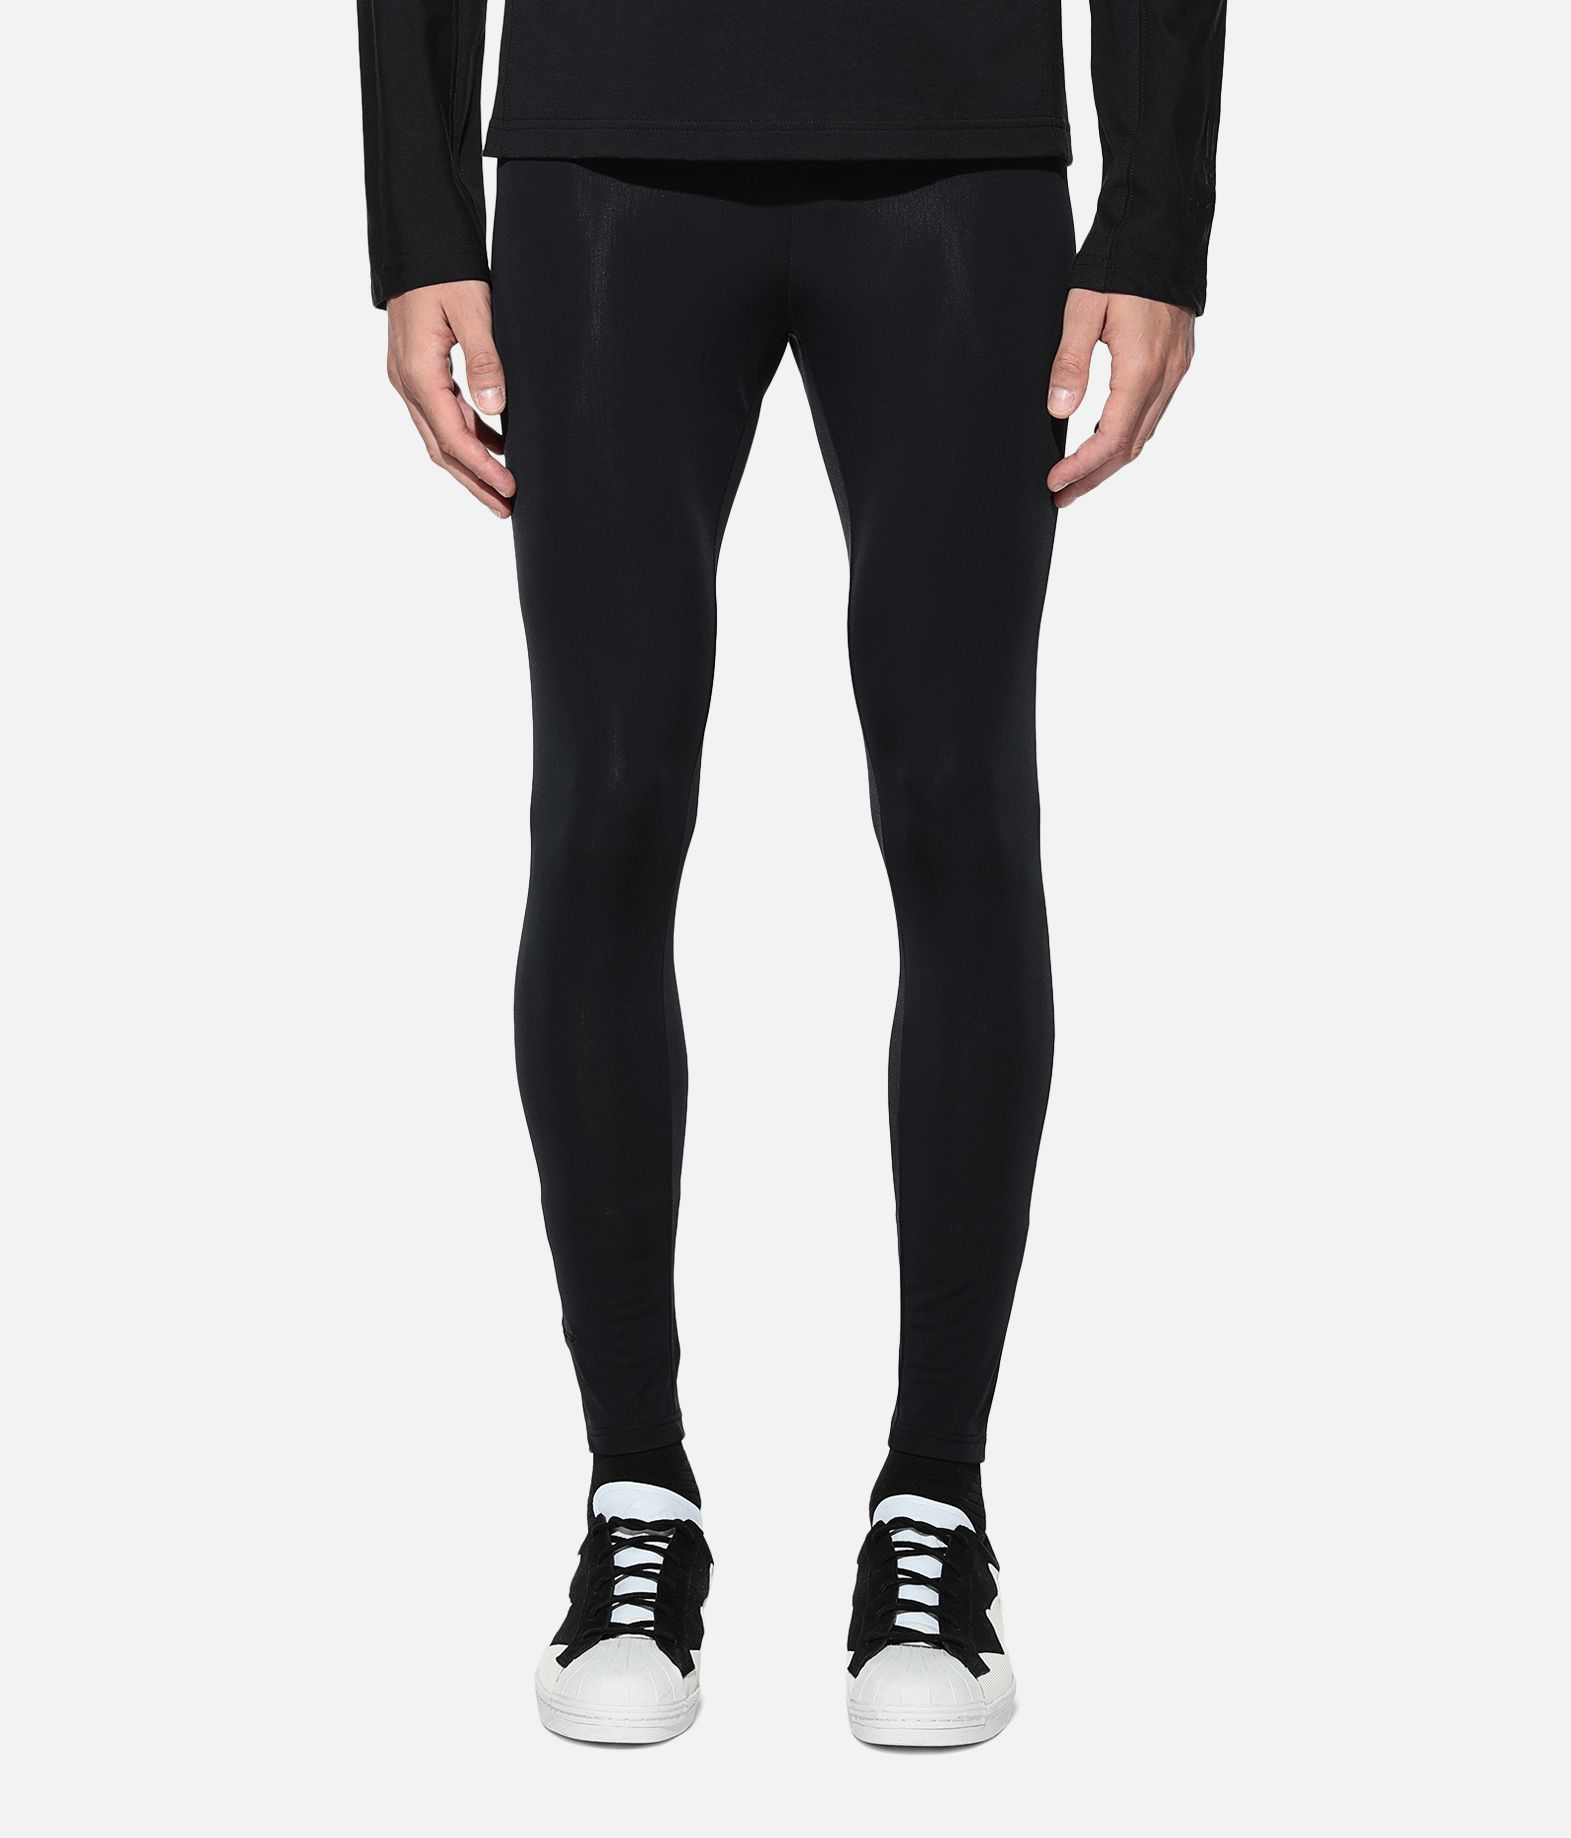 Y-3 Y-3 New Classic Tights Leggings Man r